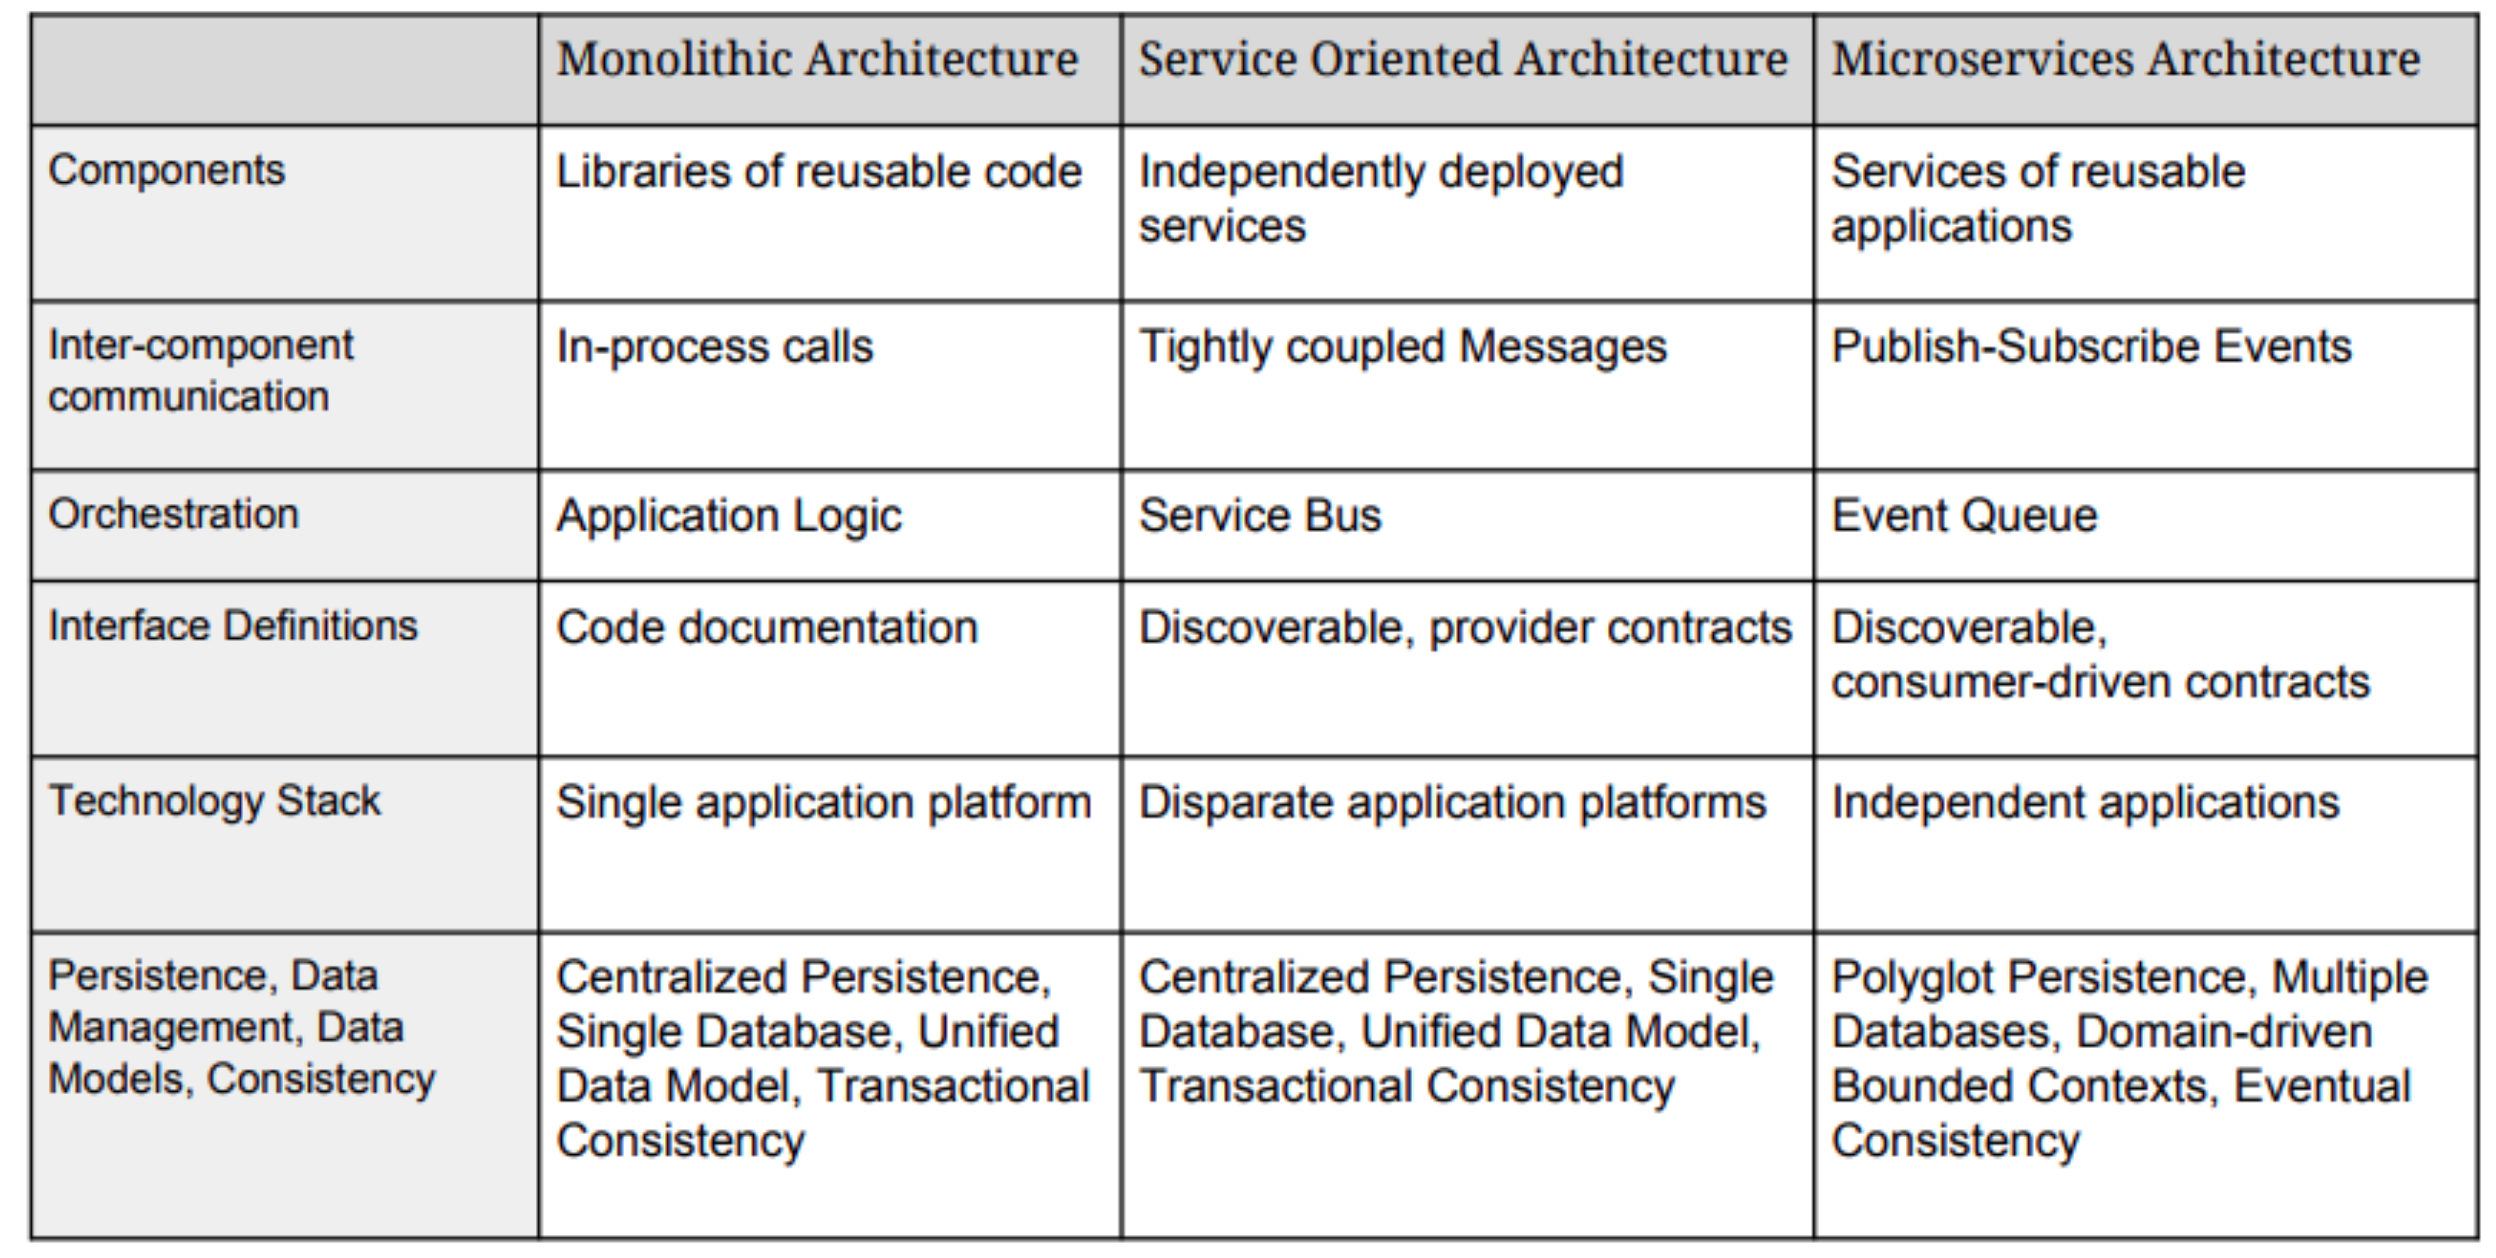 microservices_table.png